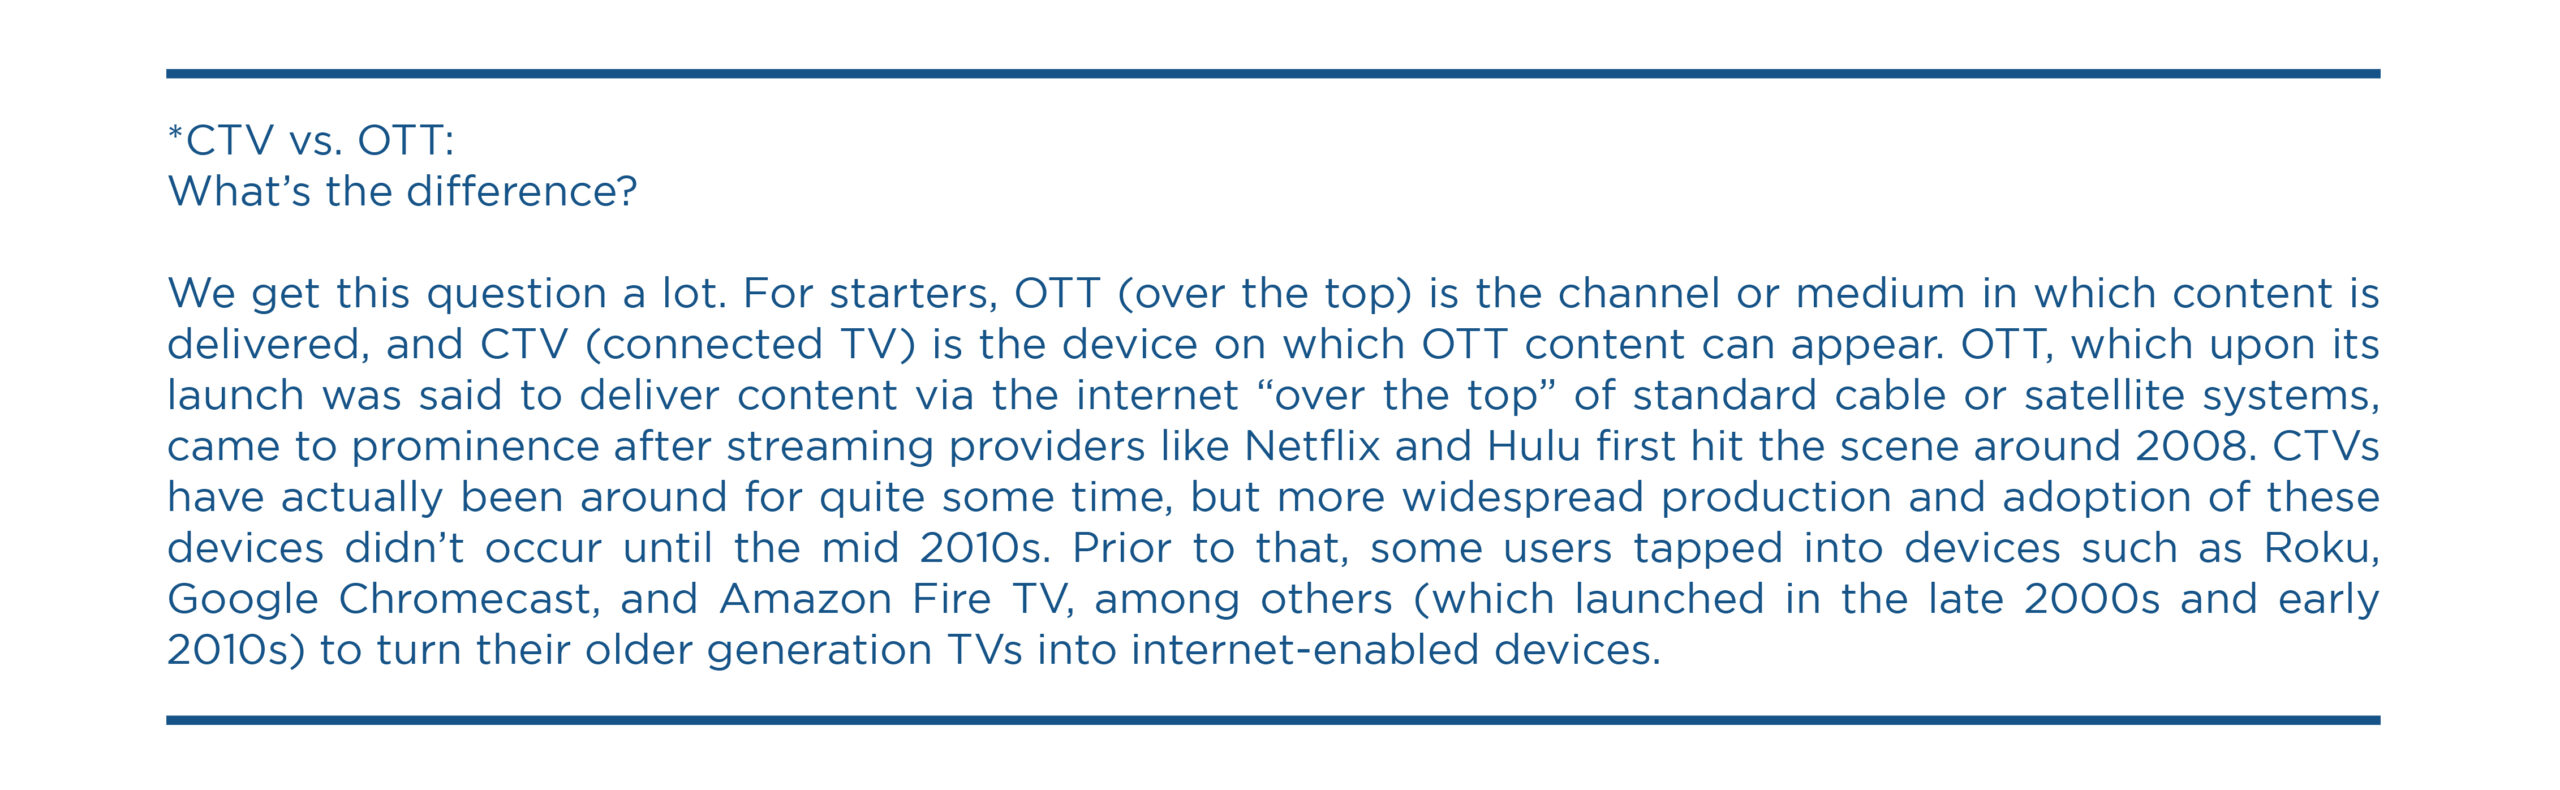 What's the Difference Between OTT and CTV?